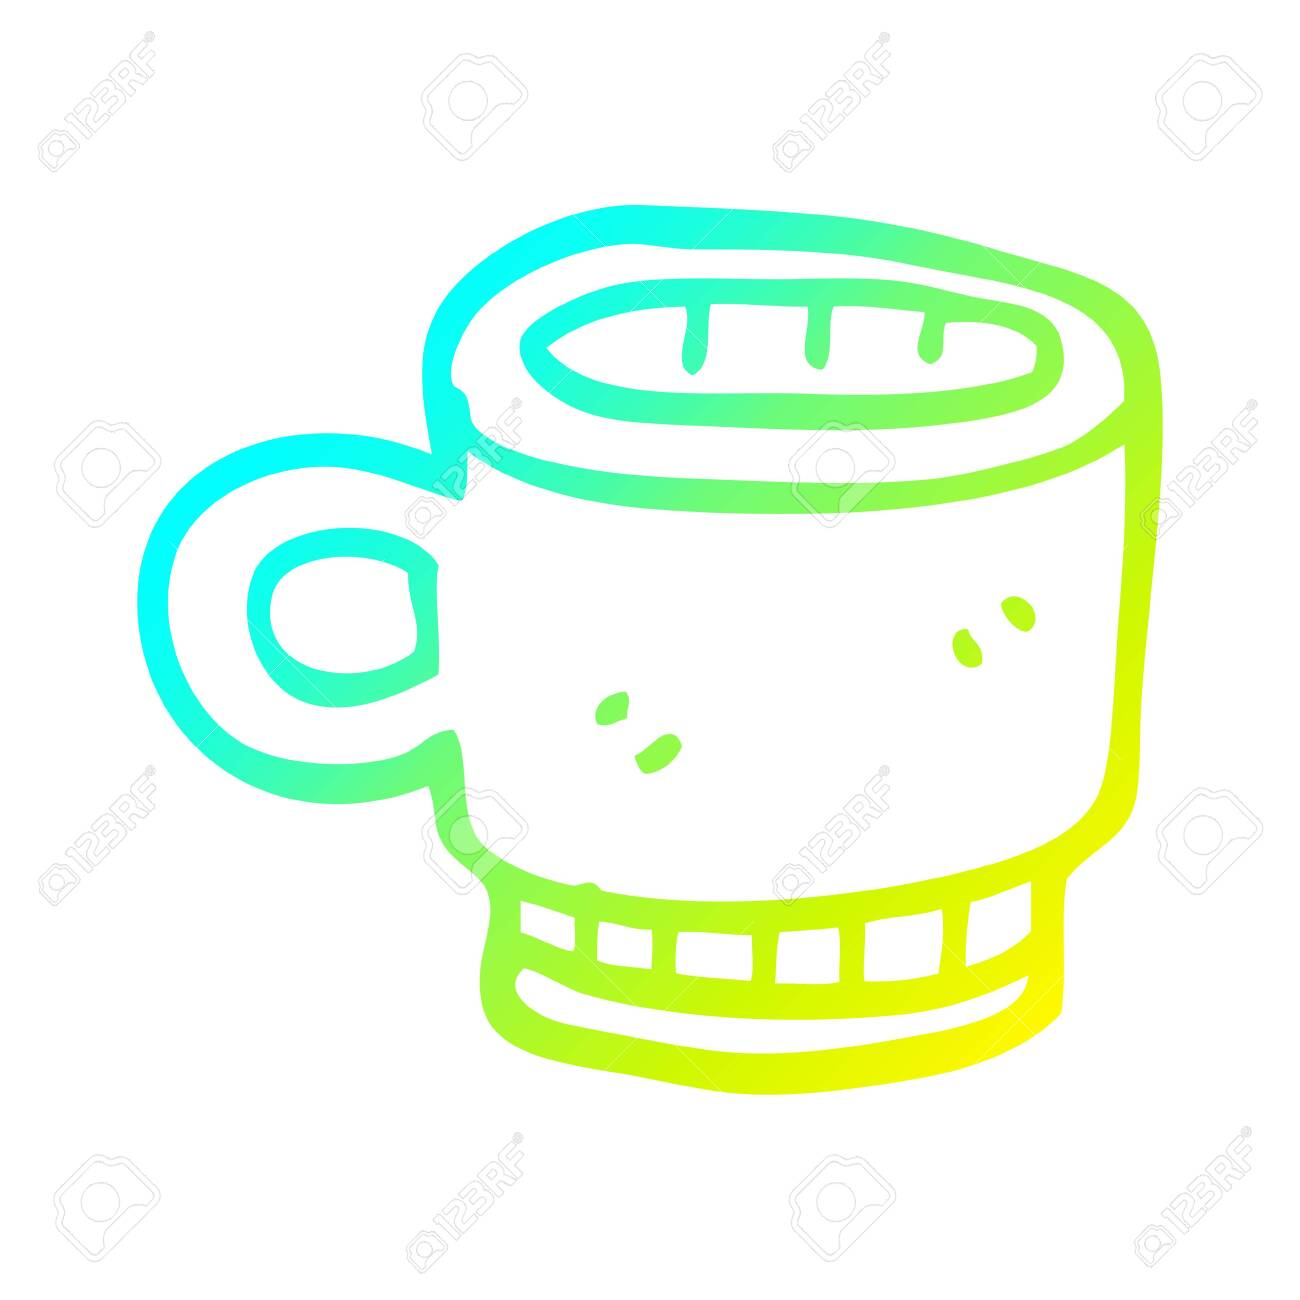 Cold Gradient Line Drawing Of A Cartoon Coffee Mug Royalty Free Cliparts Vectors And Stock Illustration Image 129278256